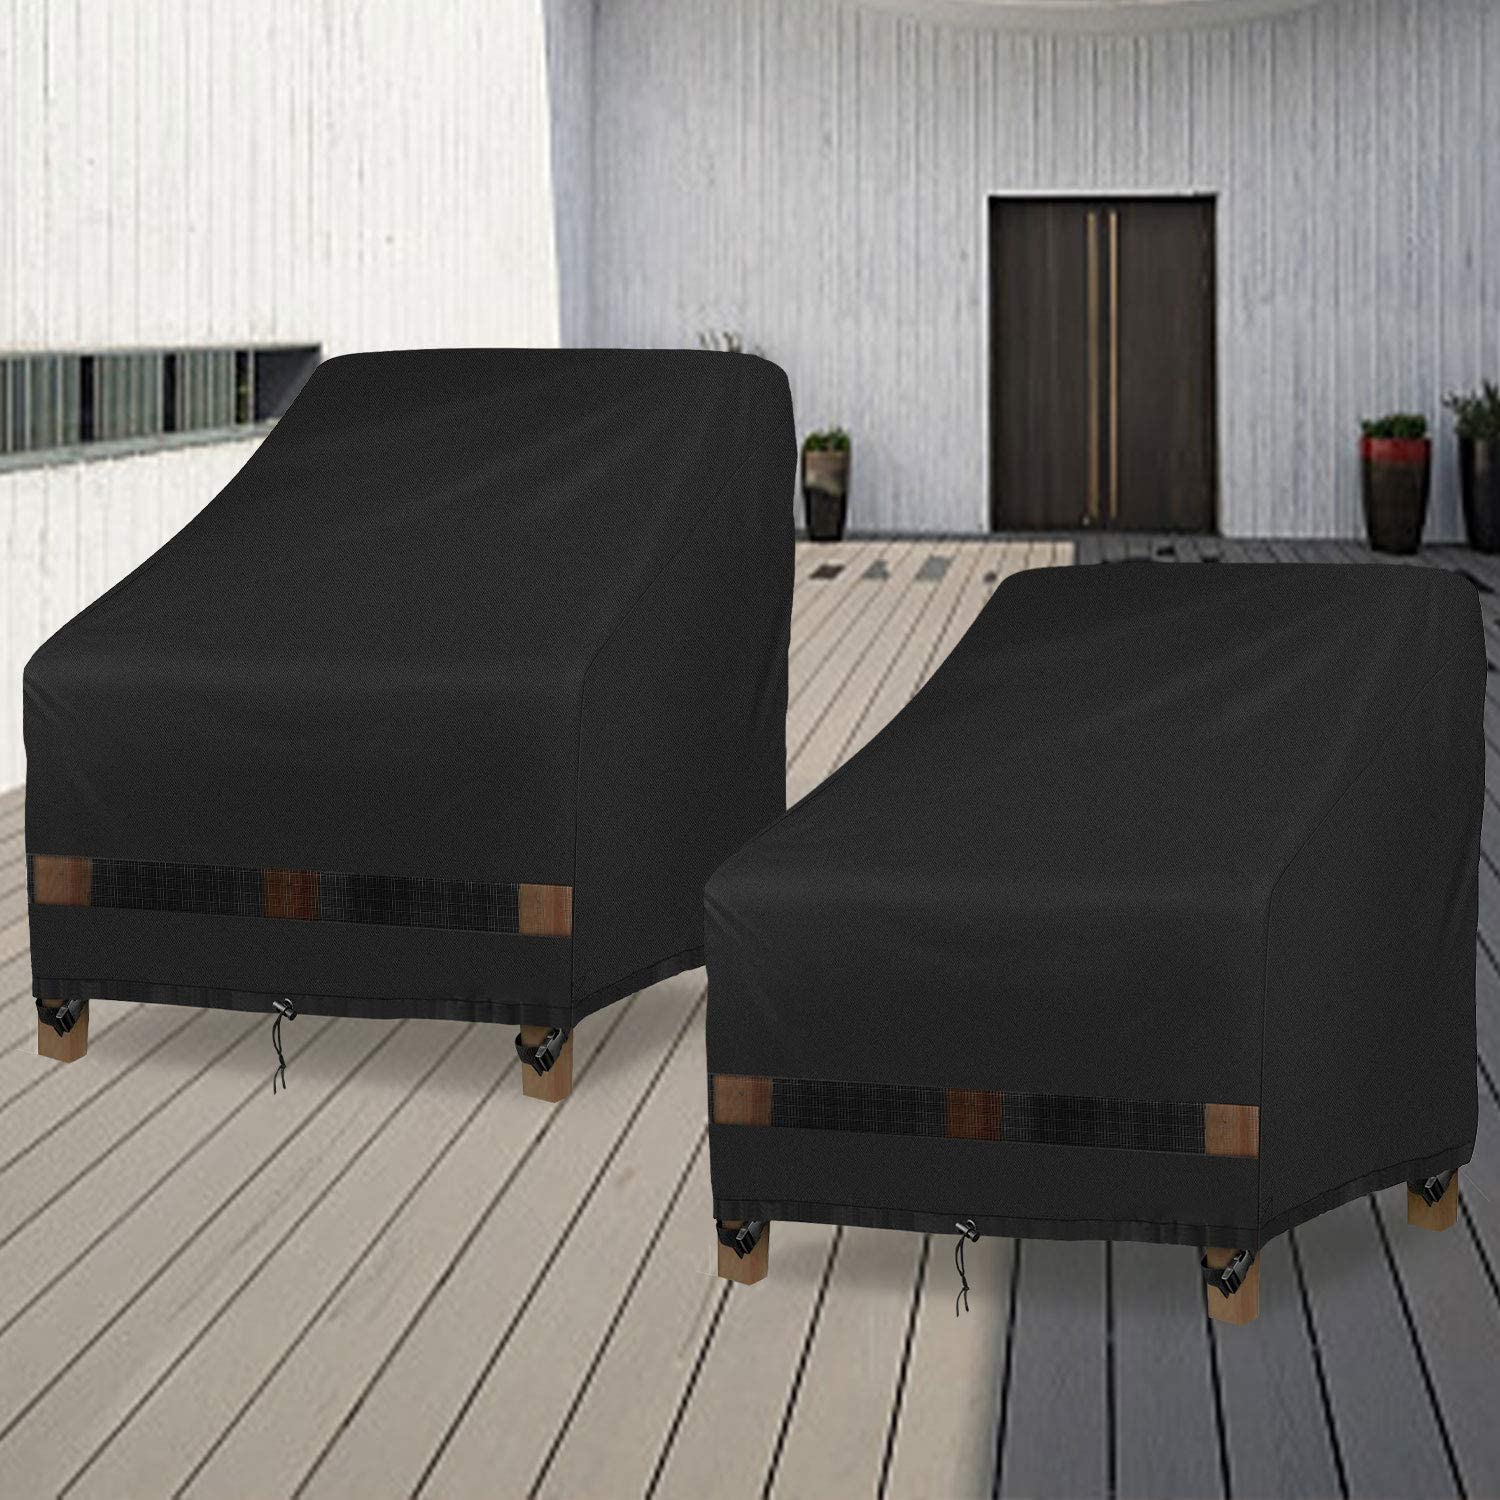 GARDRIT Patio Chair Covers, 2PCS Heavy Duty Outdoor Chair Covers, 100% Waterproof Chair Covers for Patio Furniture Fits up to 35